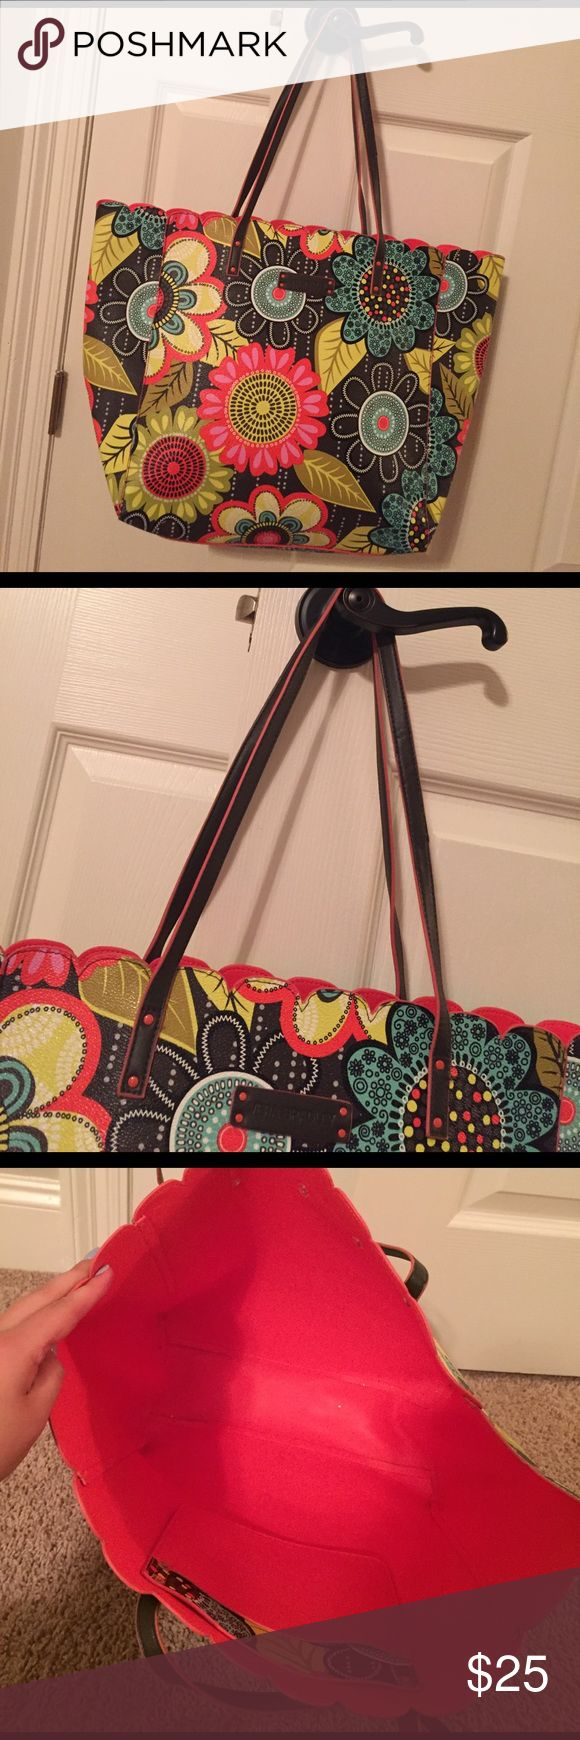 Vera Bradley Tote Bag! Vera Bradley Tote Bag! In great condition!!! Used a couple of times but still looks fabulous!!! Vera Bradley Bags Totes